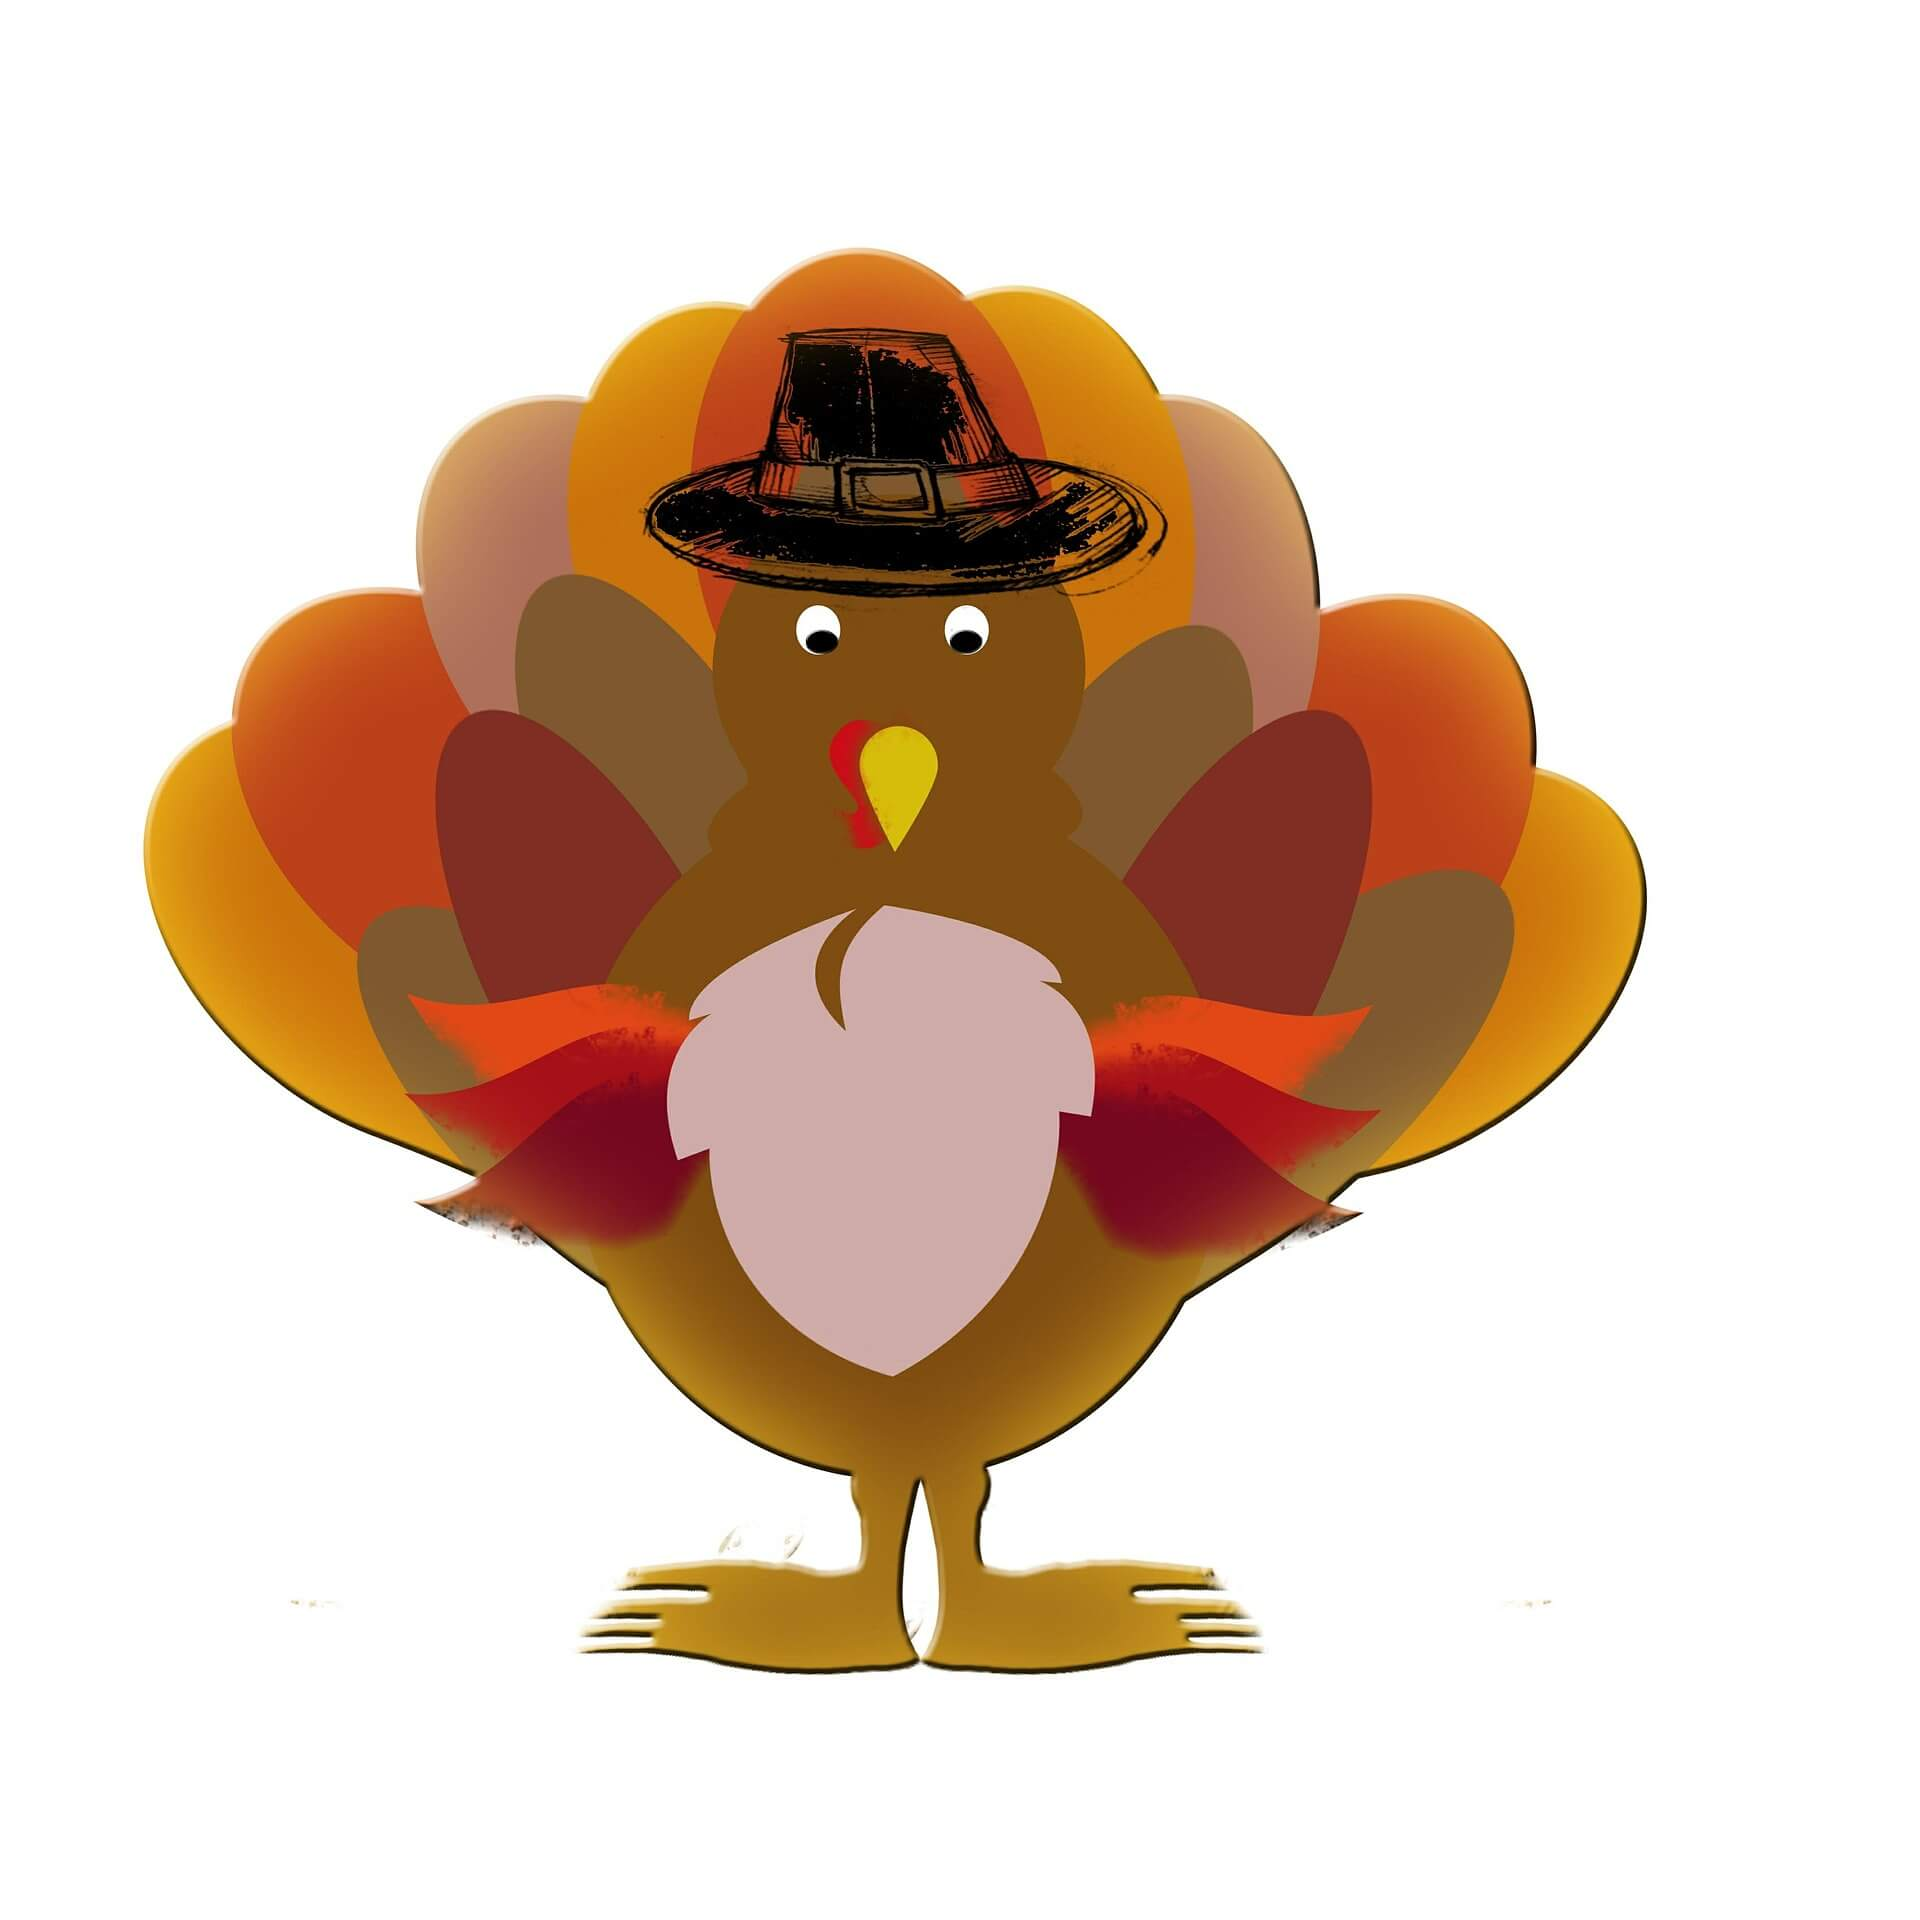 Give Thanks: A Thanksgiving for Turkeys - Vegaprocity